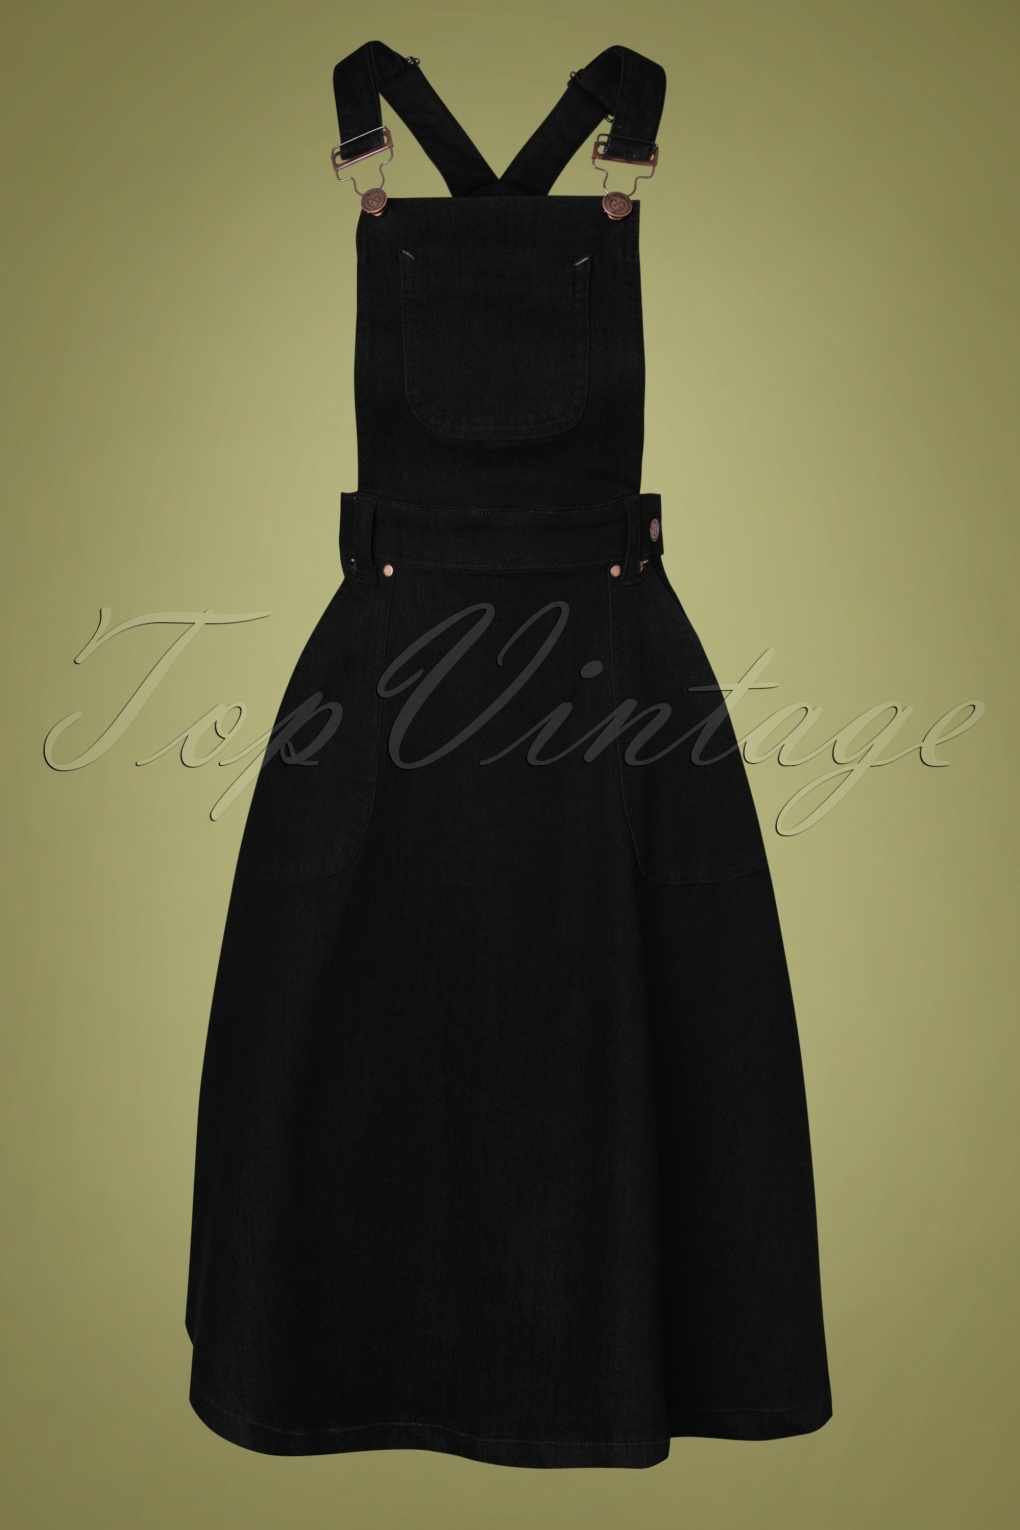 1950s Swing Skirt, Poodle Skirt, Pencil Skirts 50s Workwear Denim Jumper Skirt in Black £64.17 AT vintagedancer.com